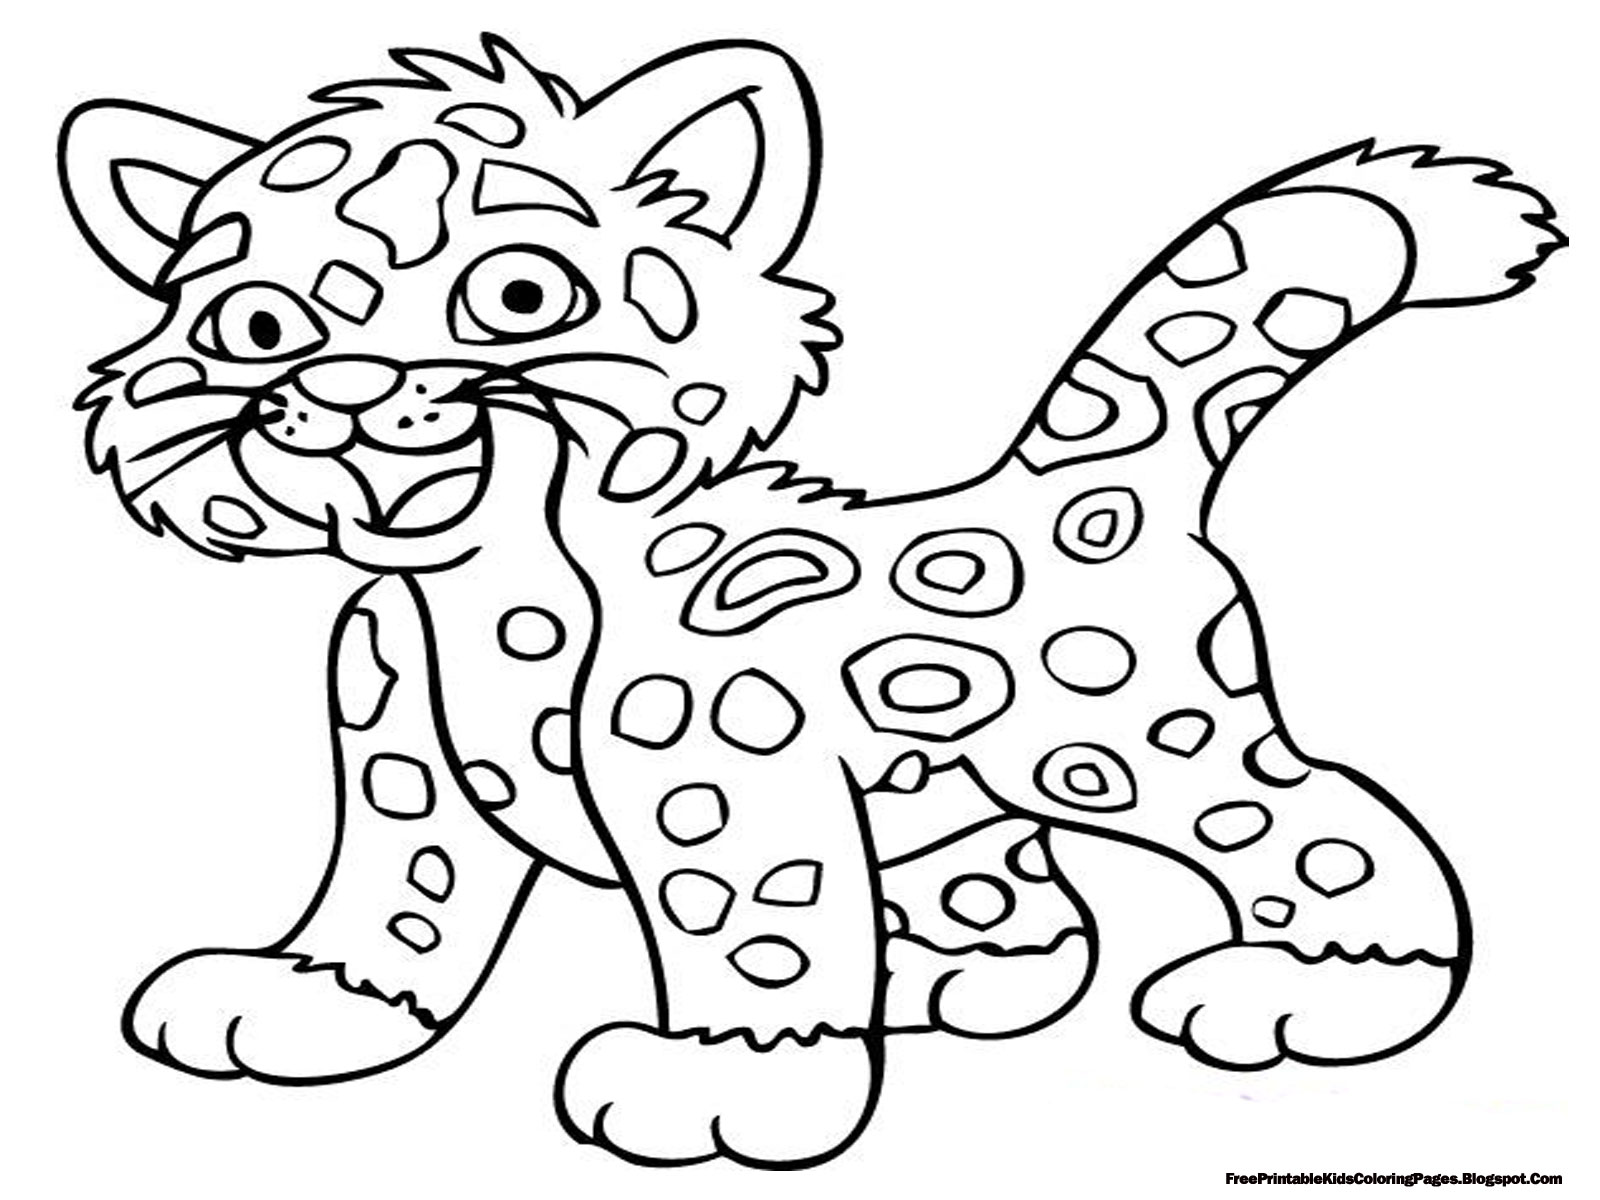 free printable animal colouring pages animals coloring pages for adults free printable animals colouring pages free animal printable